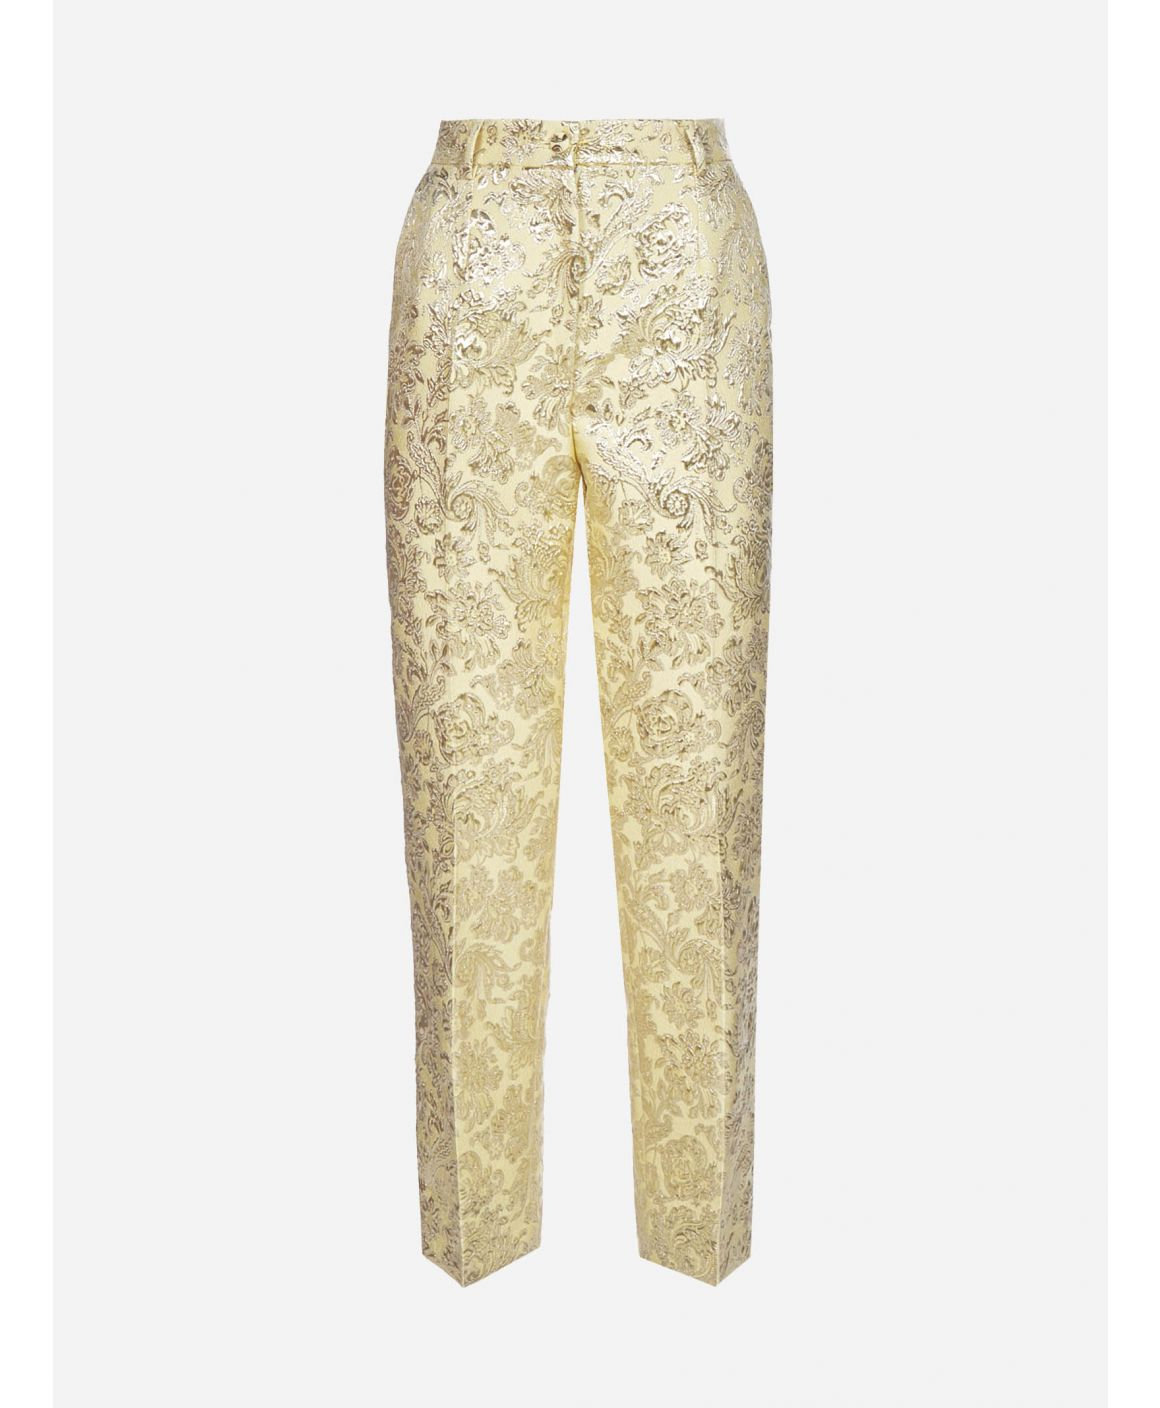 Lame' jacquard trousers